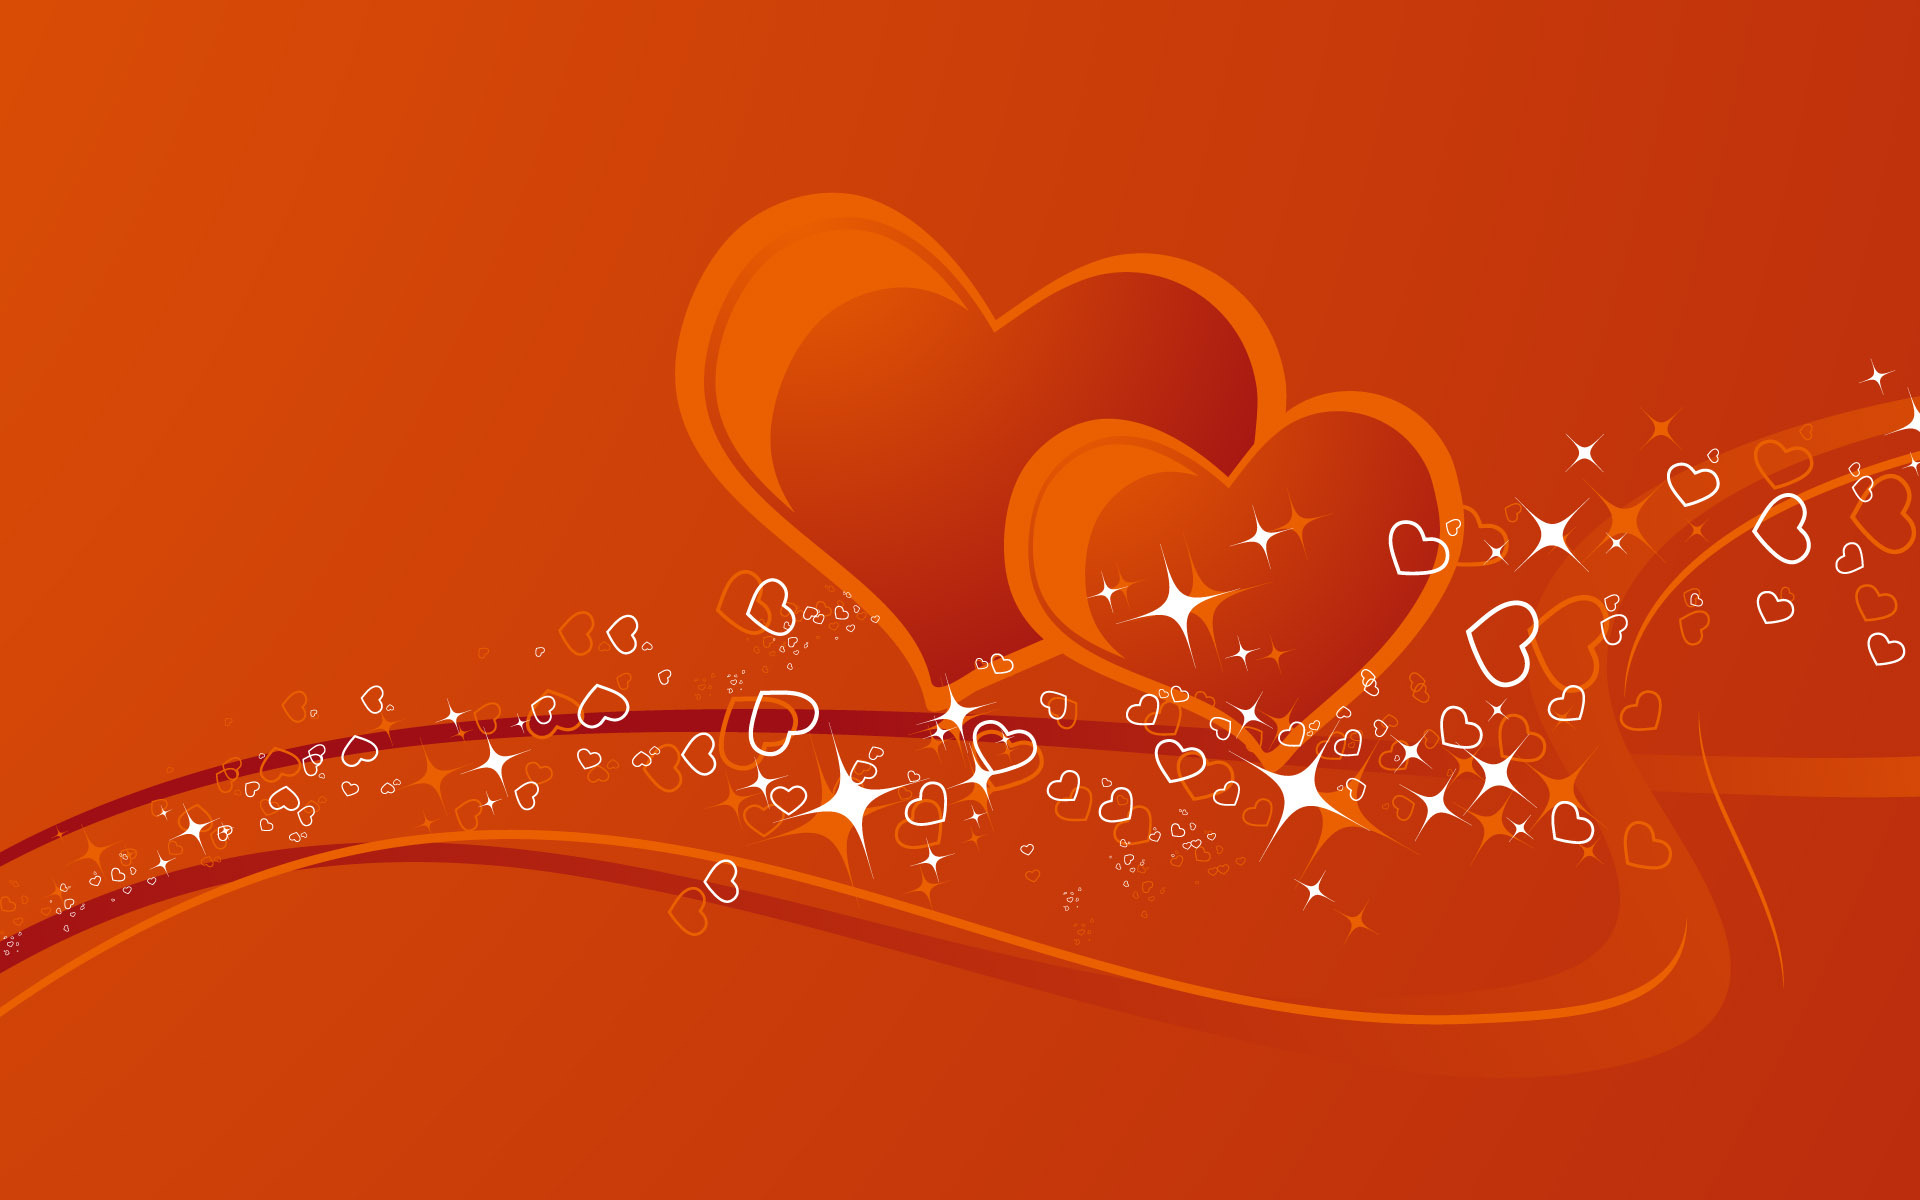 Love Wallpapers New : Love wallpaper - Love Wallpaper (4187621) - Fanpop